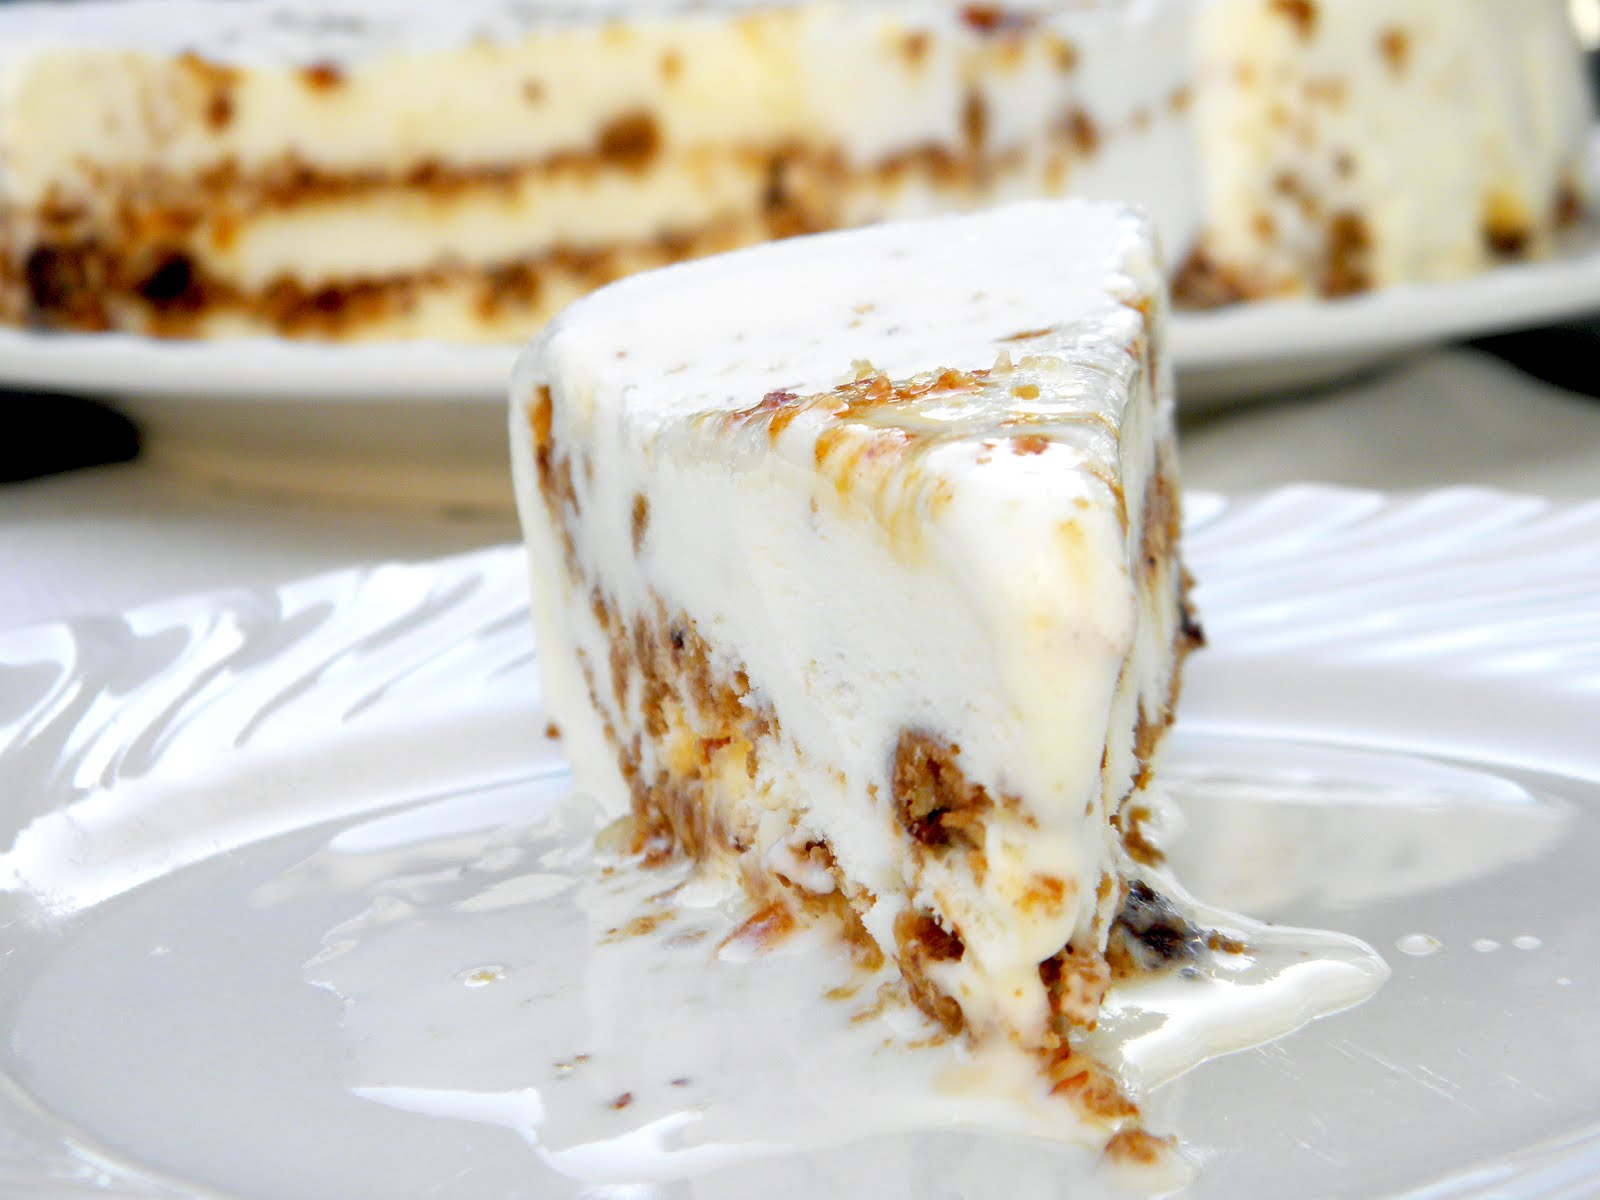 ... praline ice cream cake praline ice cream cake the praline ice cream